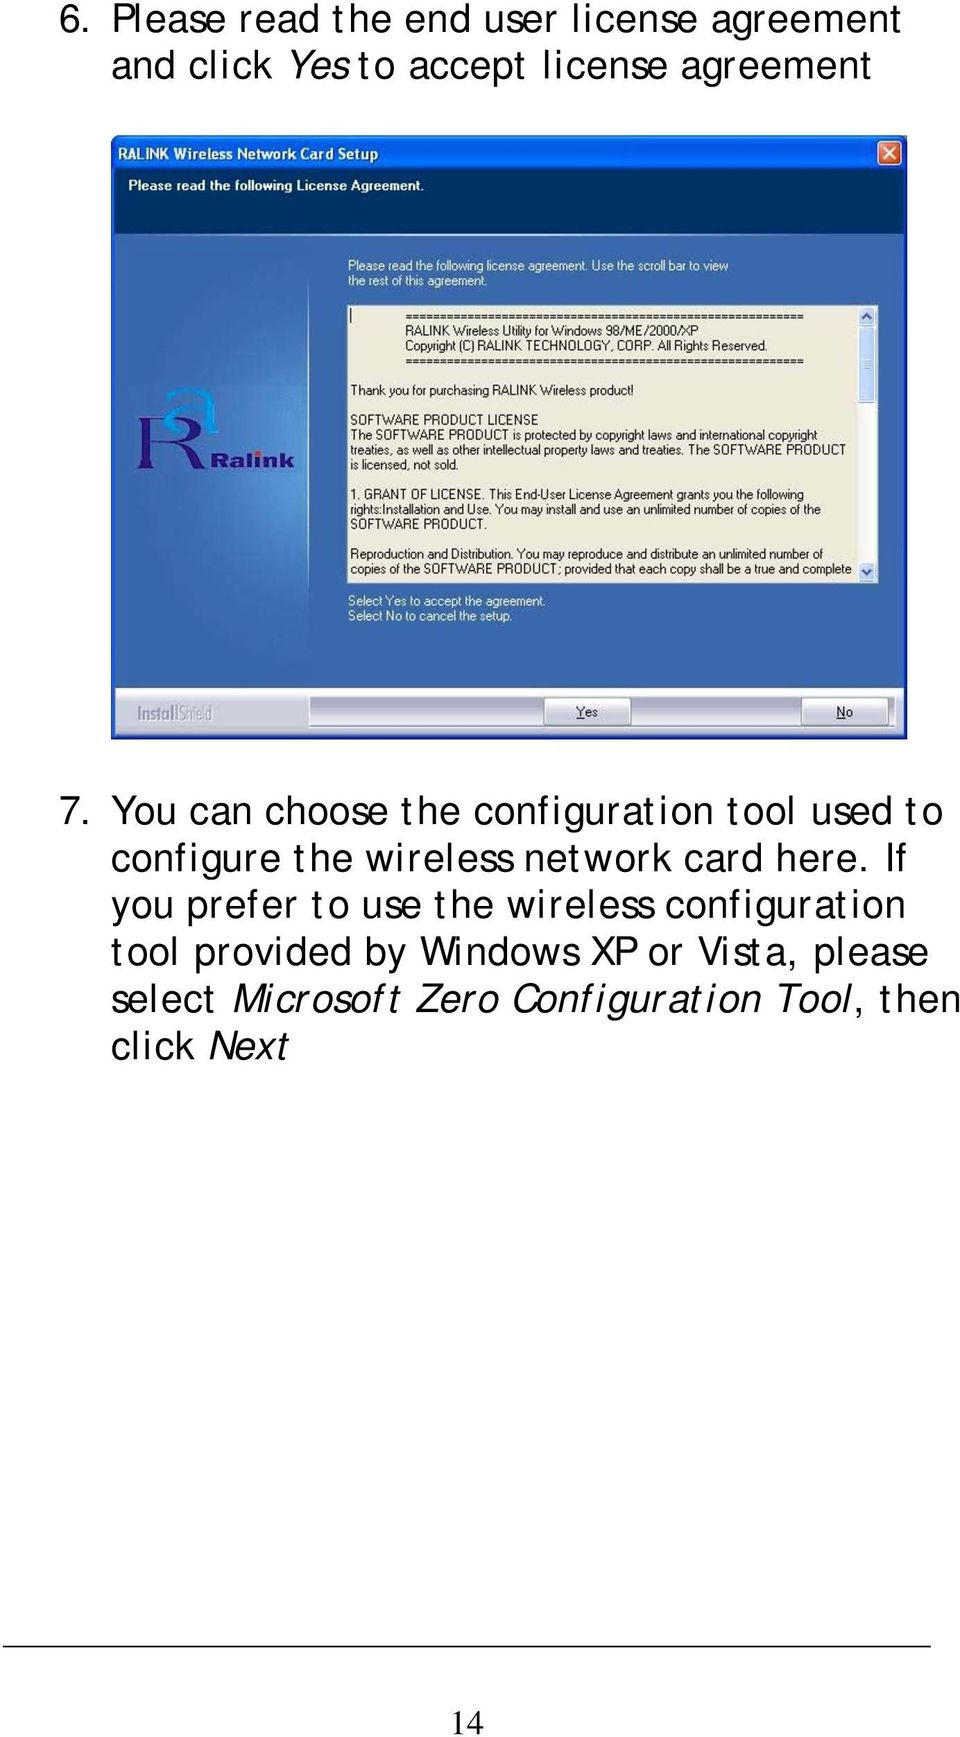 You can choose the configuration tool used to configure the wireless network card